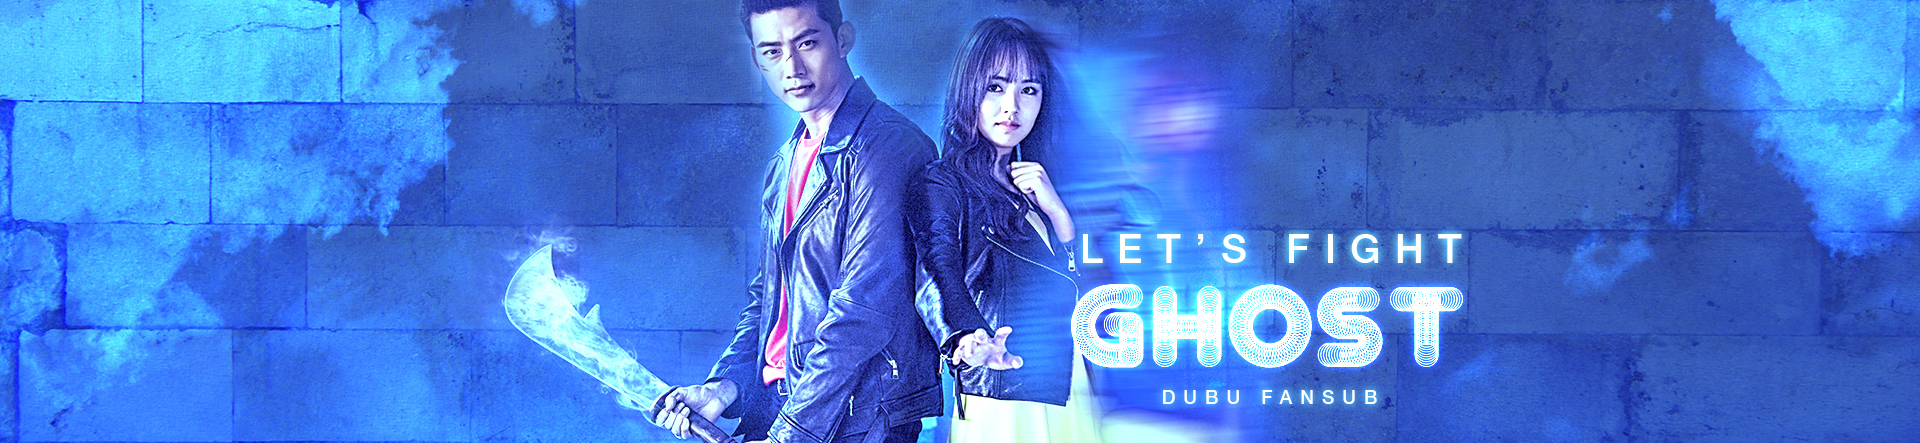 lets-fight-ghost-dubu-fansub-vostfr